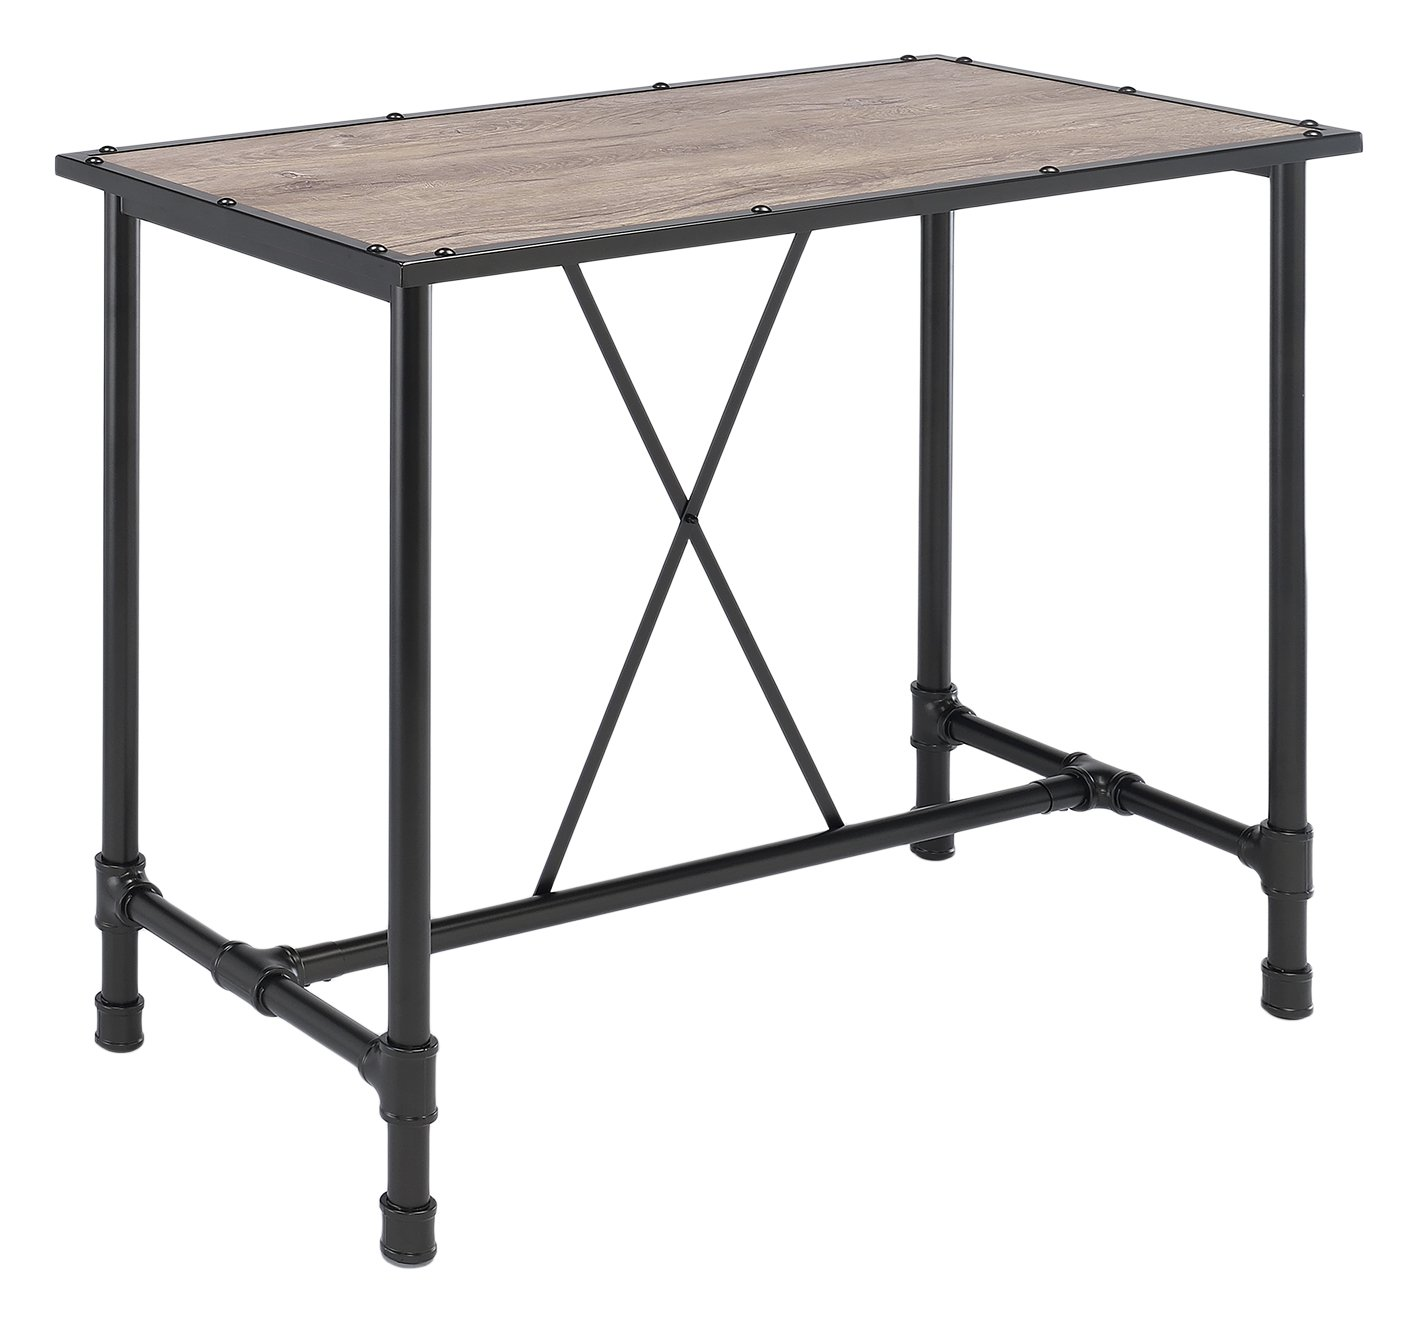 Acme Furniture 72030 Caitlin Bar Table, Rustic Oak & Black by Acme Furniture